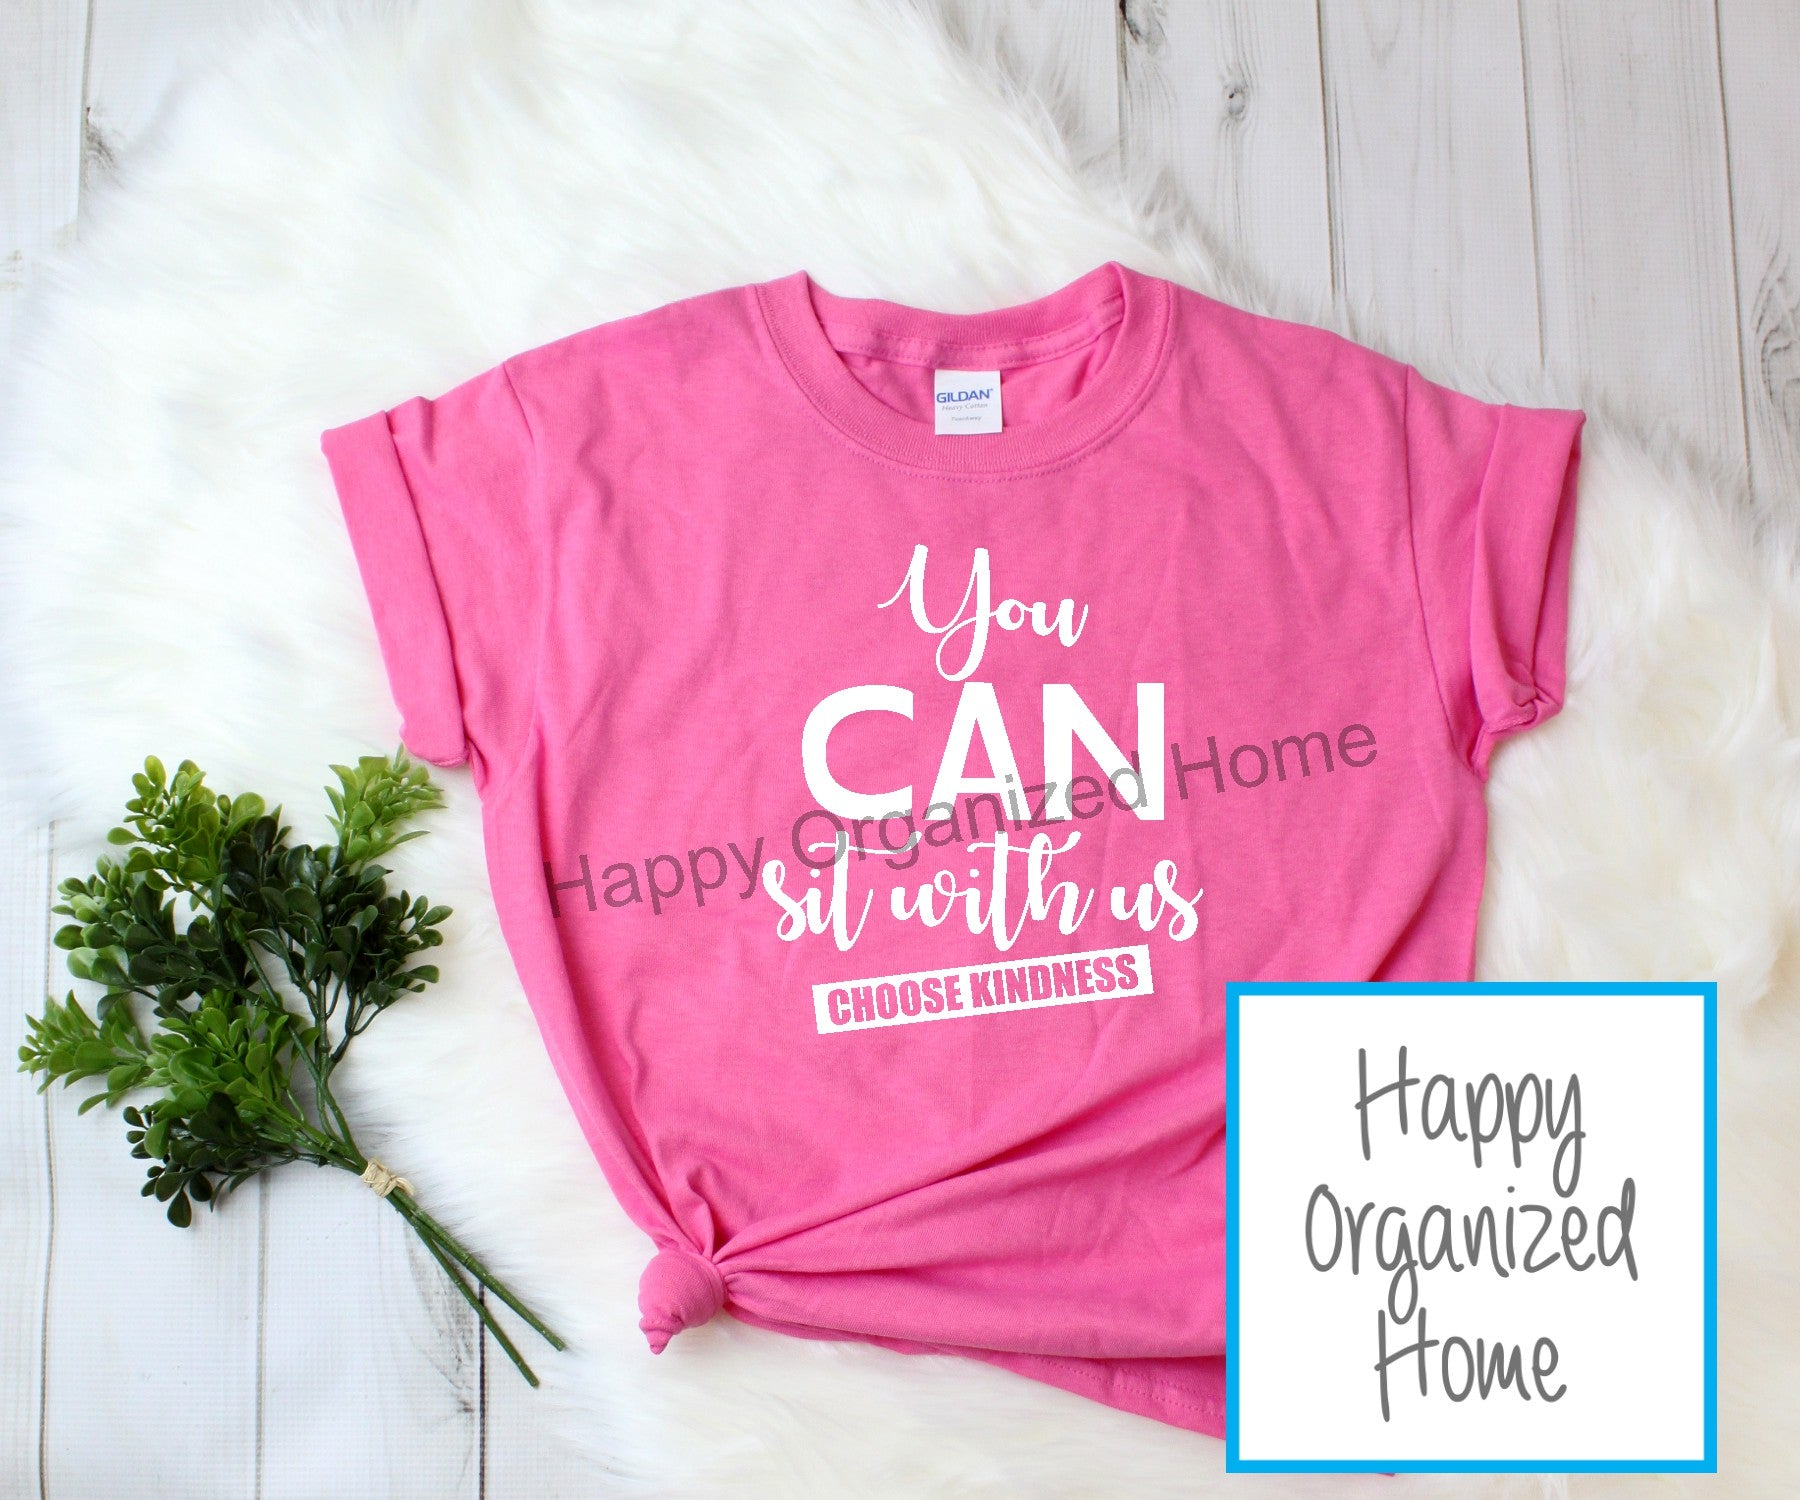 You CAN sit with us - Kids Pink Shirt Day T-shirt